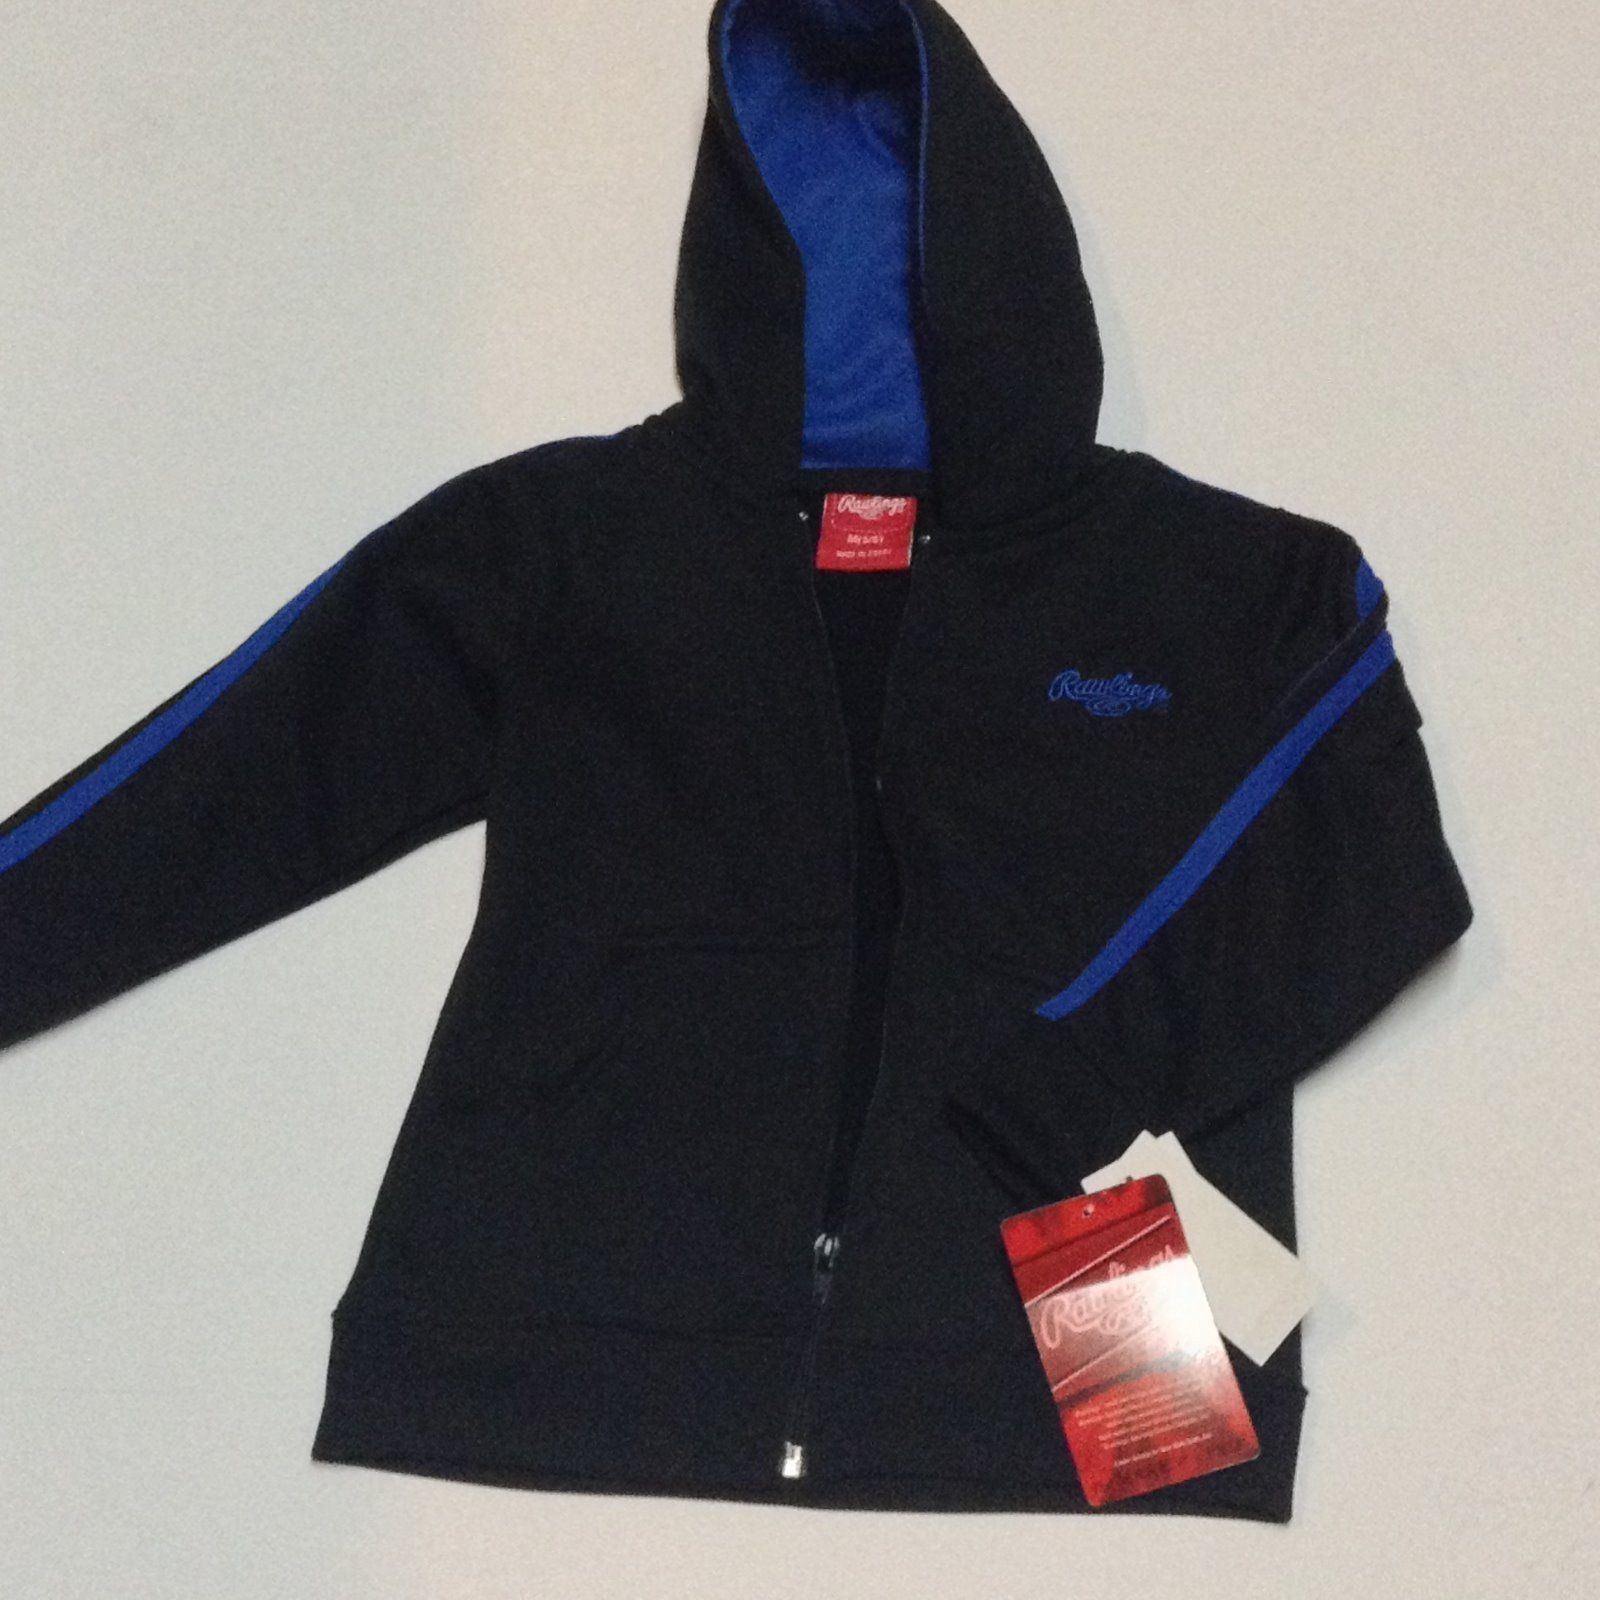 Primary image for Rawlings Hooded Jacket Youth Sz M 5/6 NWT Black Blue Logo